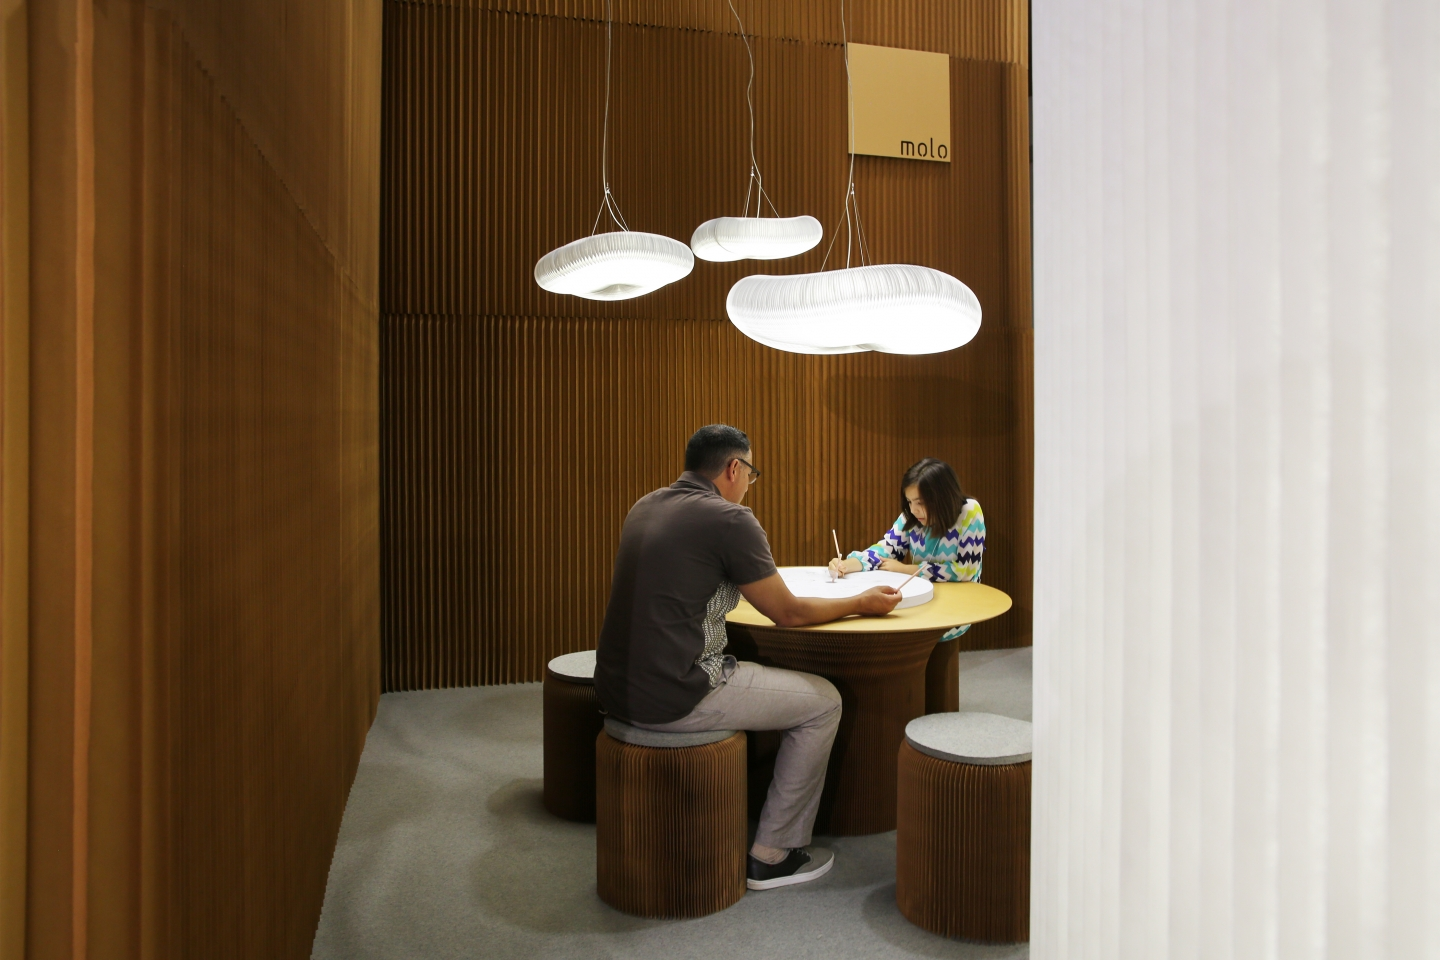 honeycomb paper furniture and cloud lighting by molo - sitting below cloud softlight pendant at ICFF